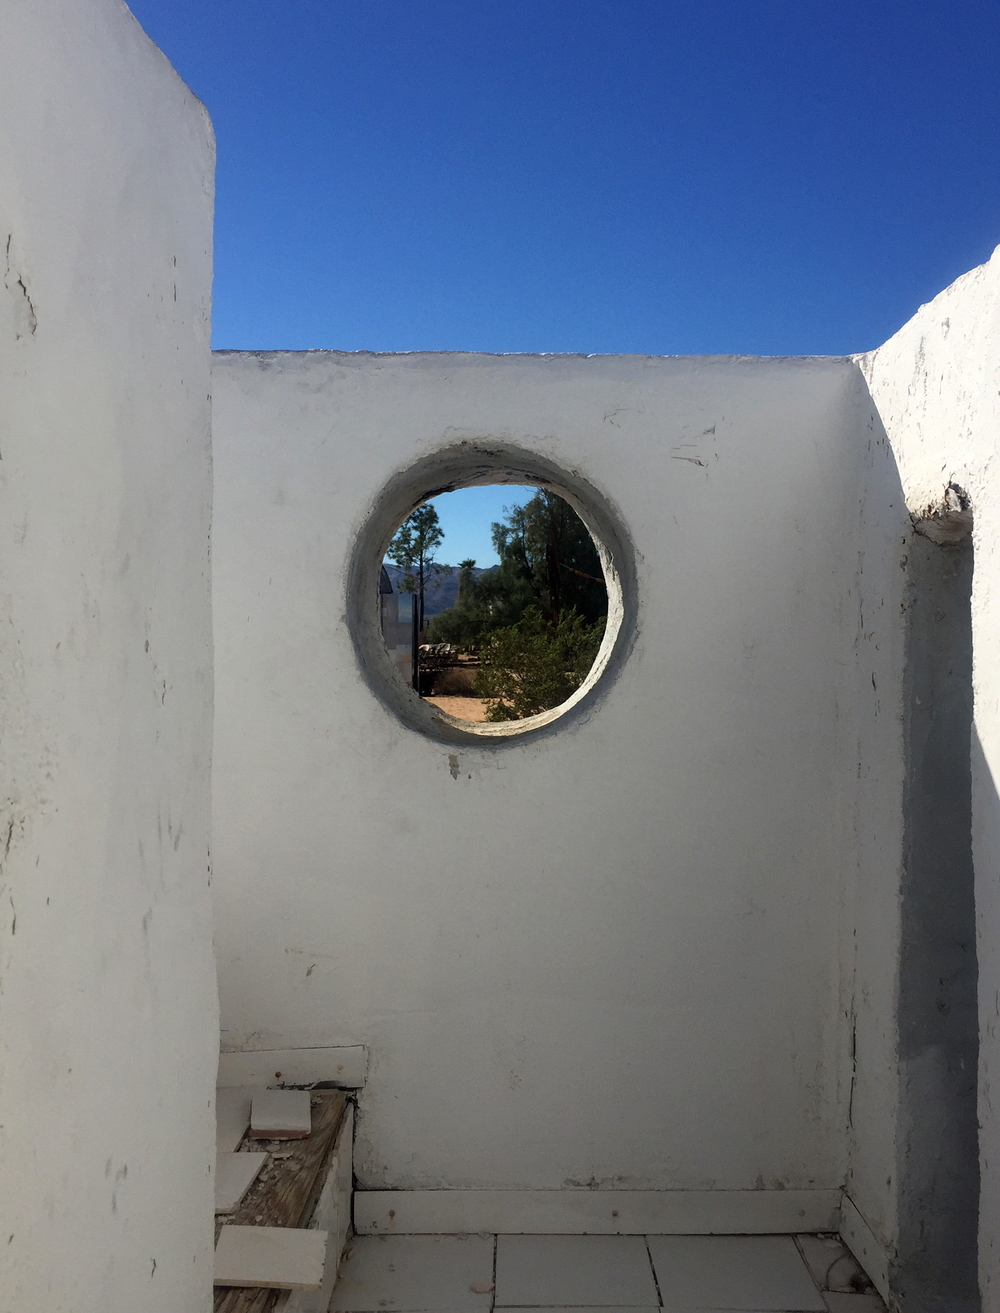 Noah Purifoy Outdoor Art Museum, Joshua Tree